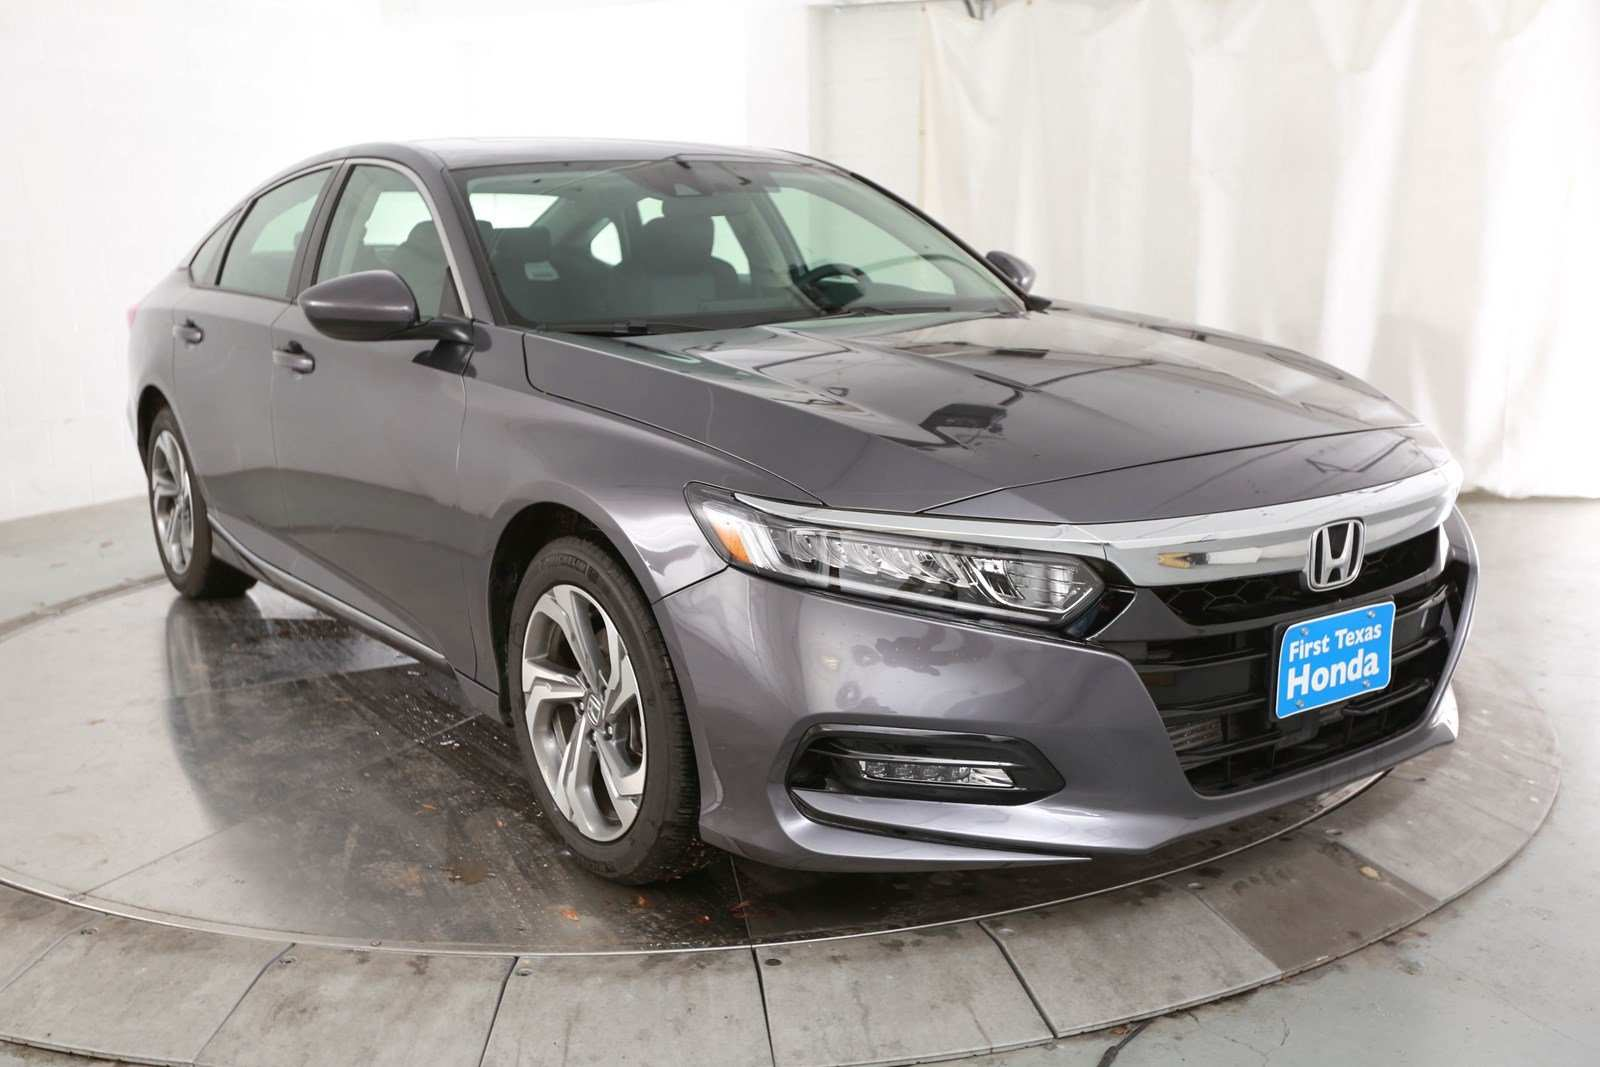 82 The 2019 Honda Accord Coupe Sedan Exterior And Interior